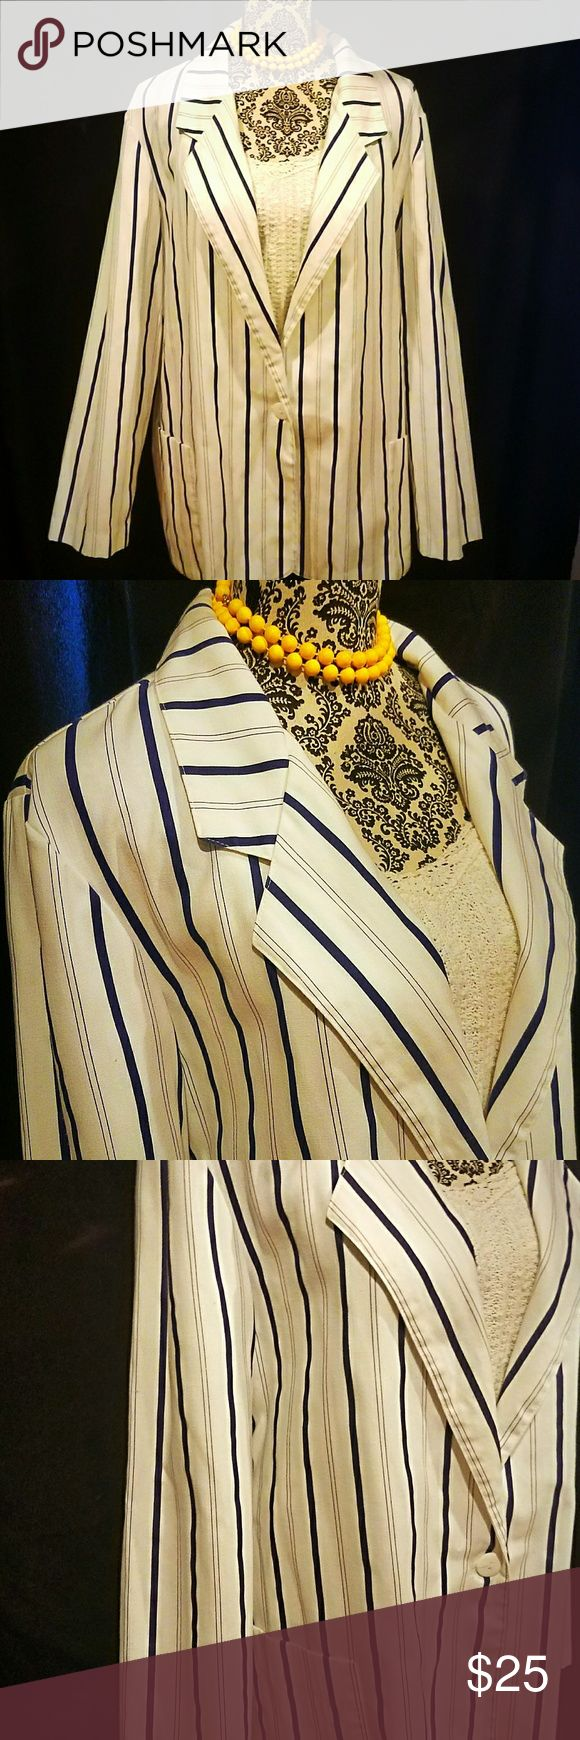 Vintage Plus Size Pinstripe Blazer Beautiful, crisp, clean blue and white plus size vintage blazer with button closure and side pockets.  Brand: It's Pure Gould  Size: 20  This is a great staple item to any closet! Dress up this blazer for work or pair with some jeans for a more casual look! Vintage Jackets & Coats